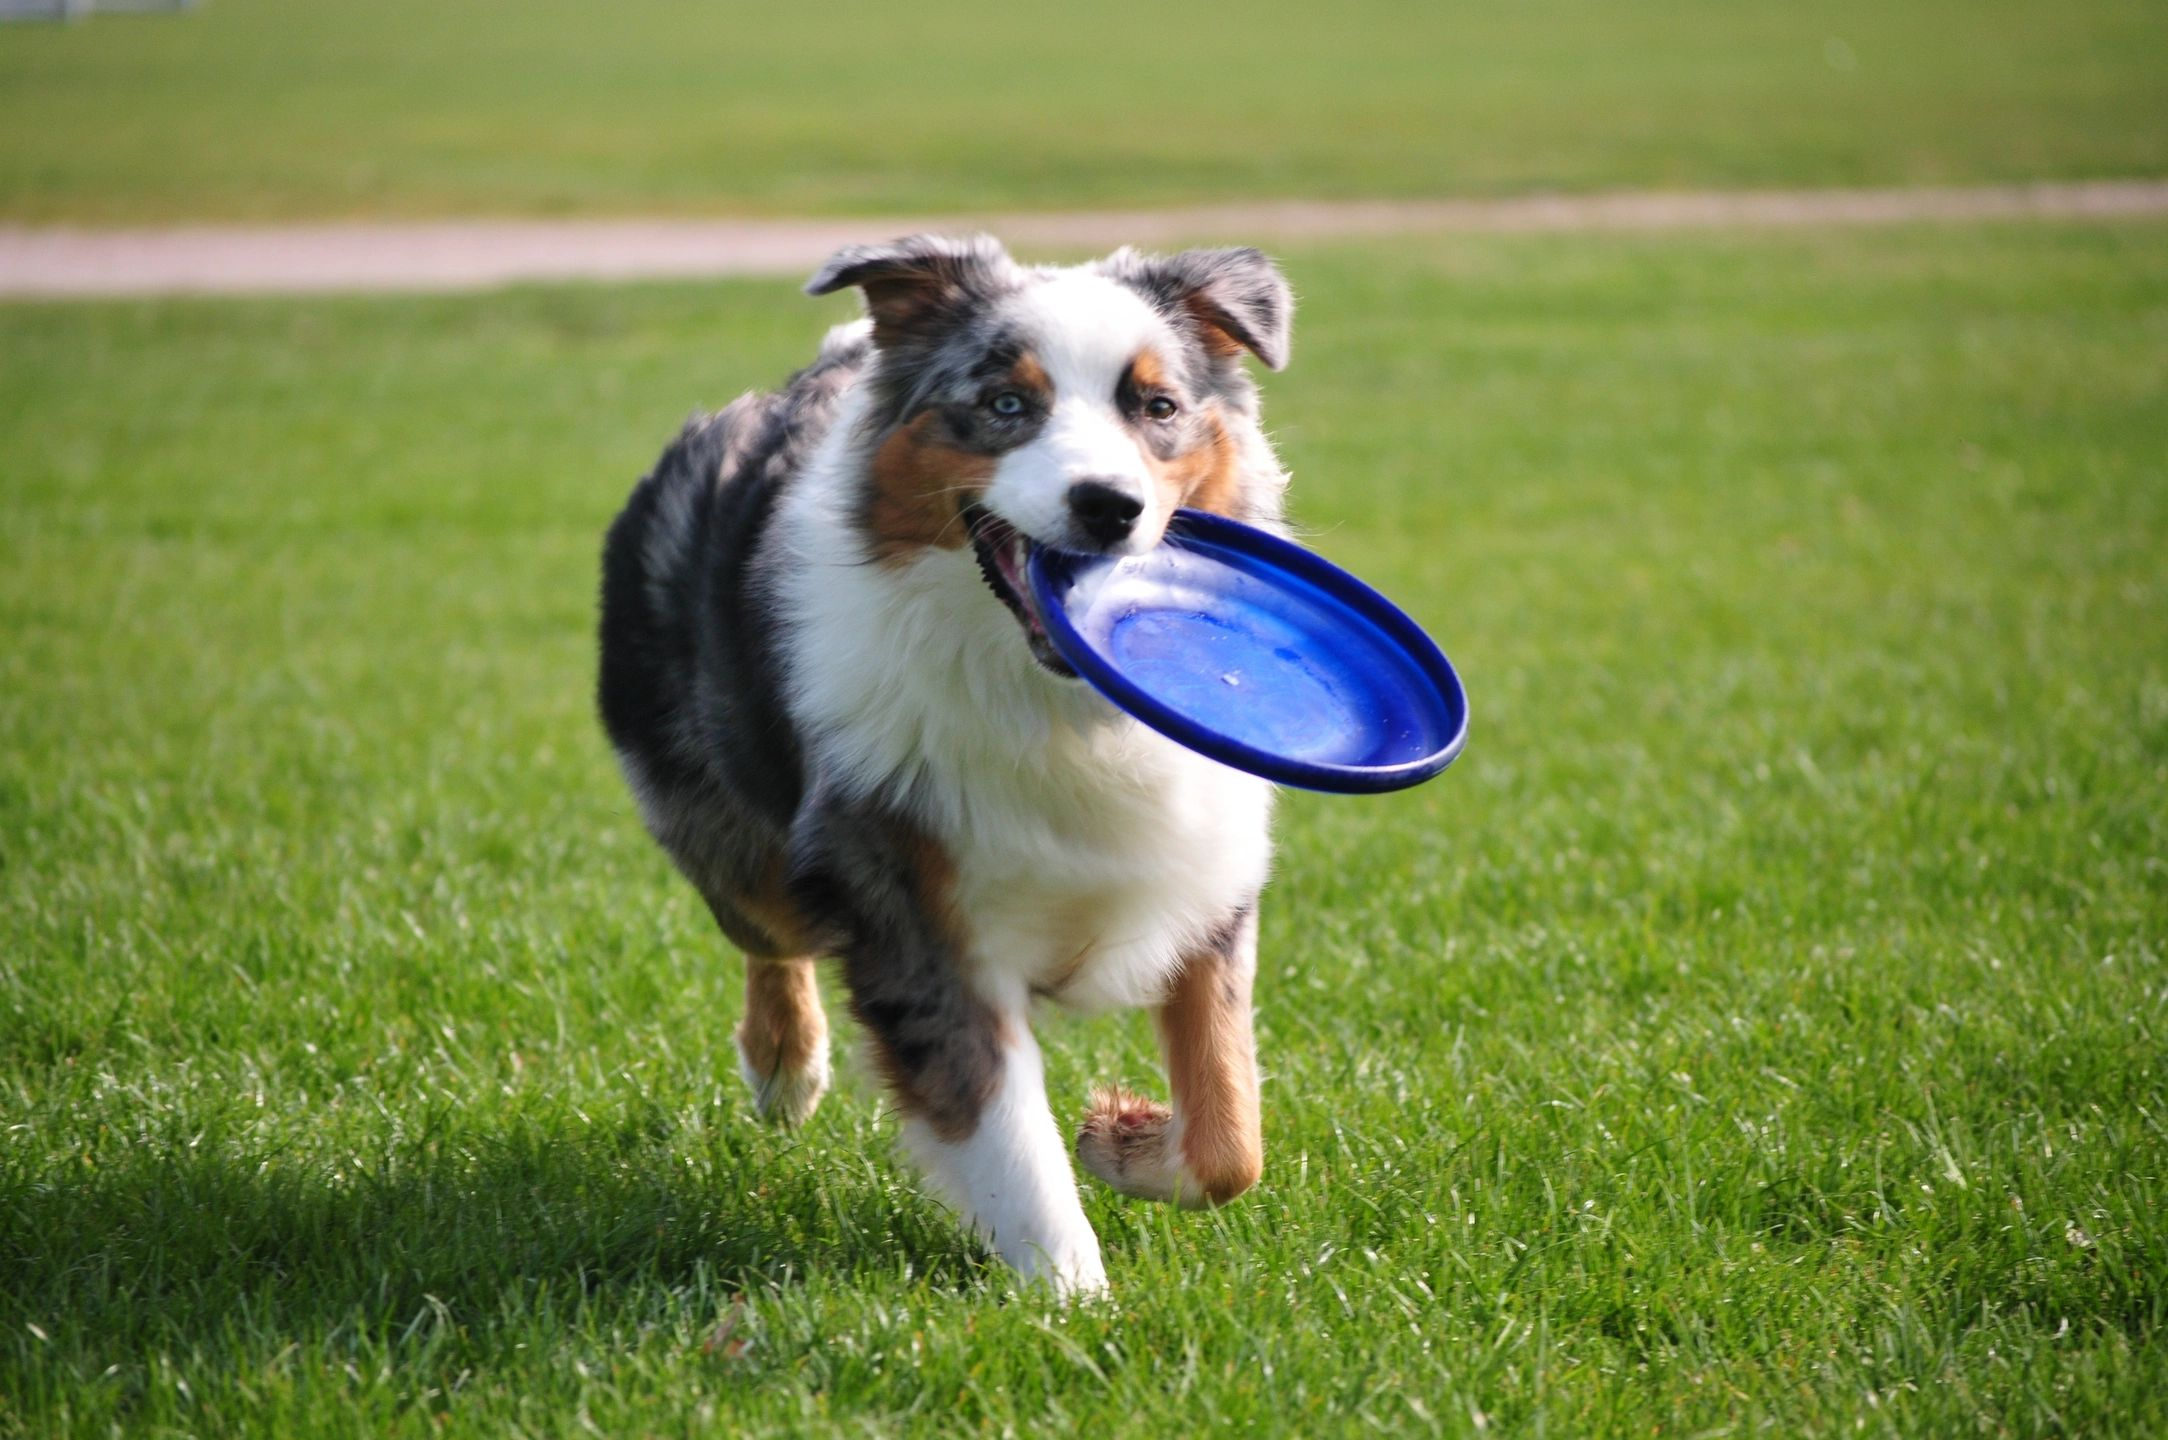 Sheltie carrying a frisbee